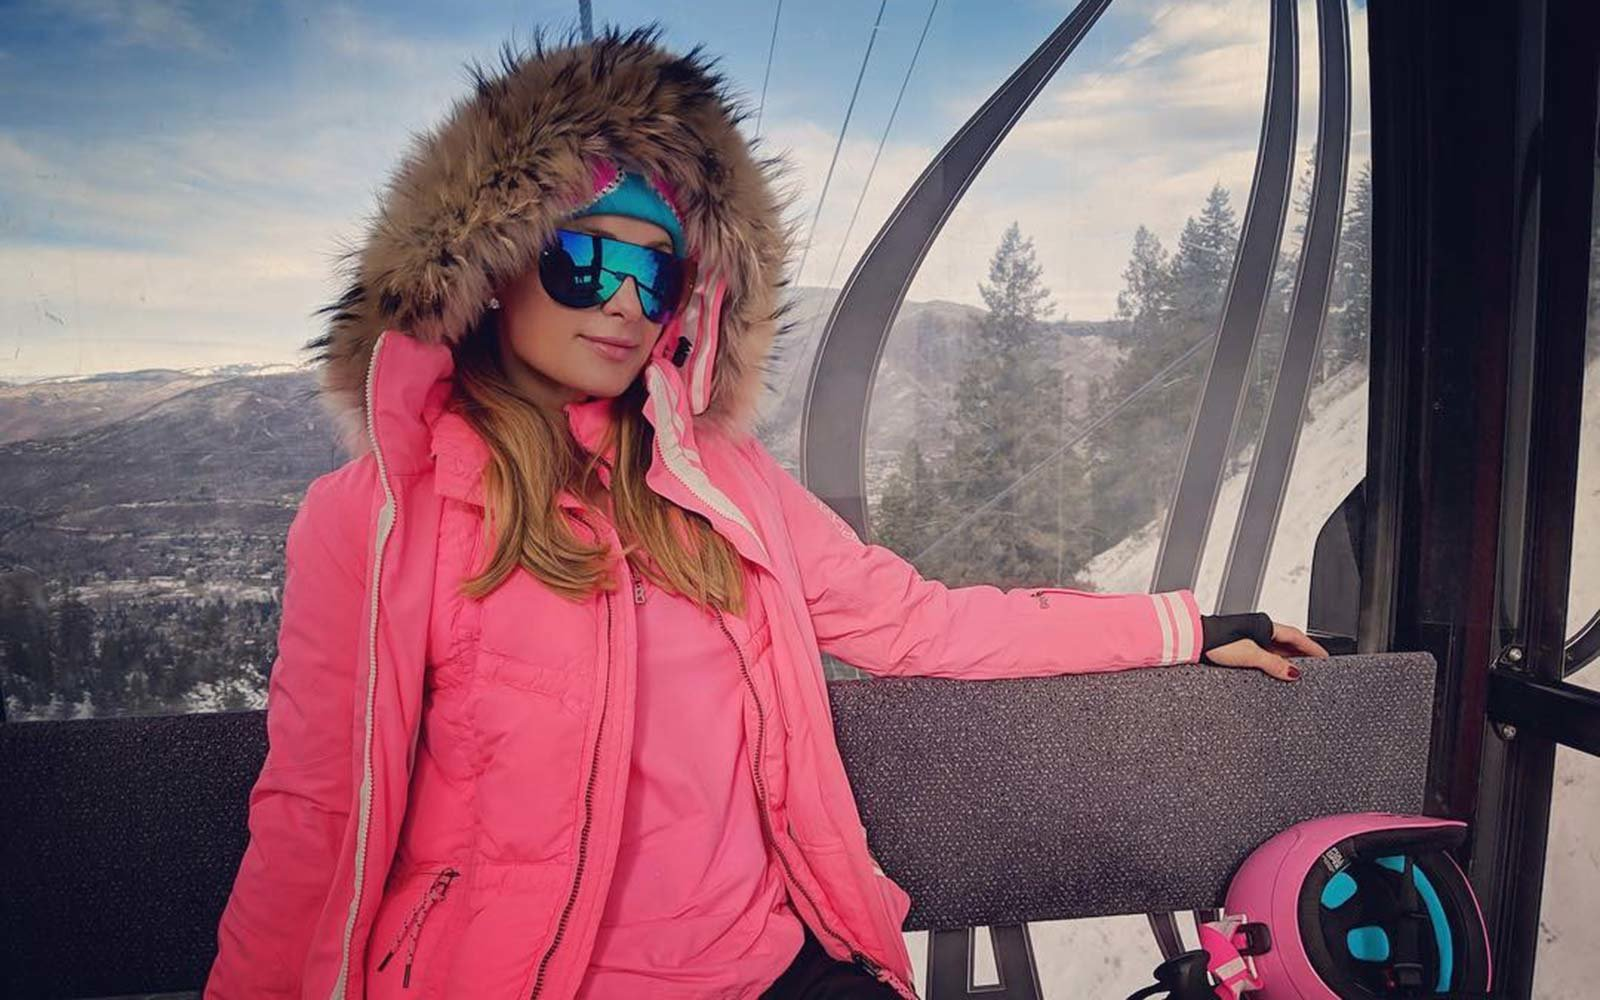 Paris Hilton Ski Vacation Holidays Aspen Colorado